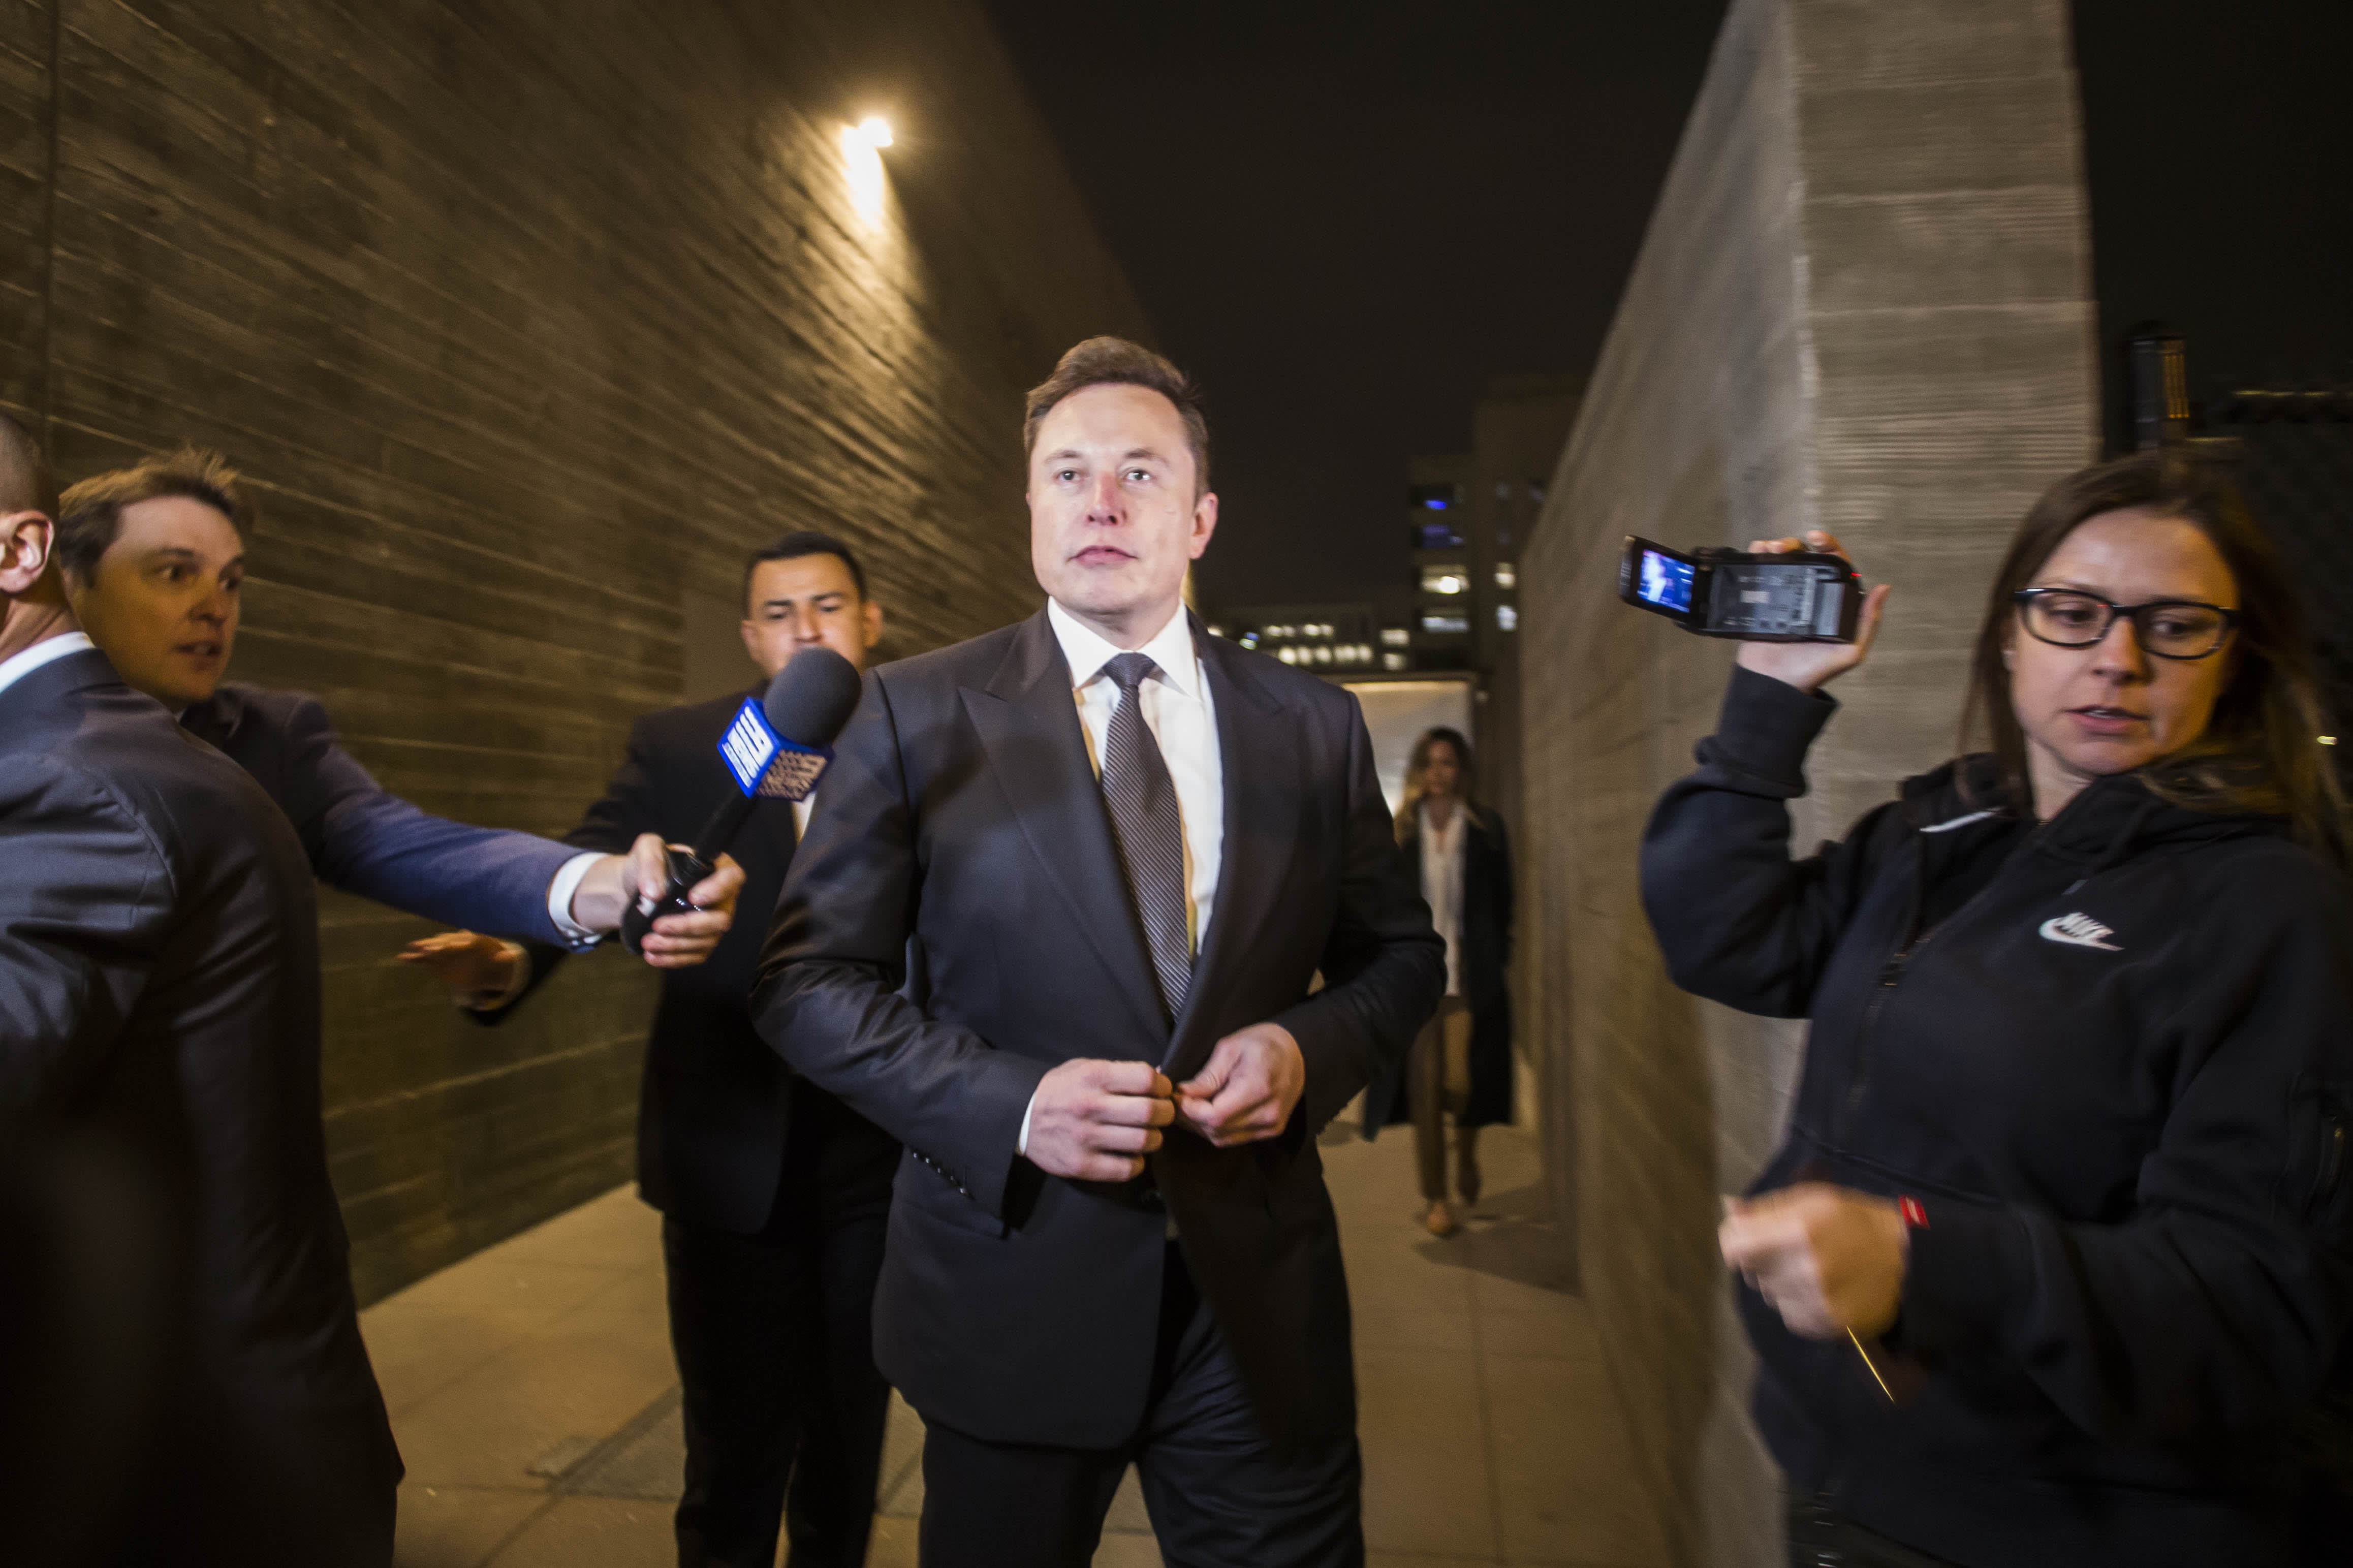 Elon Musk found not liable in 'pedo guy' defamation trial